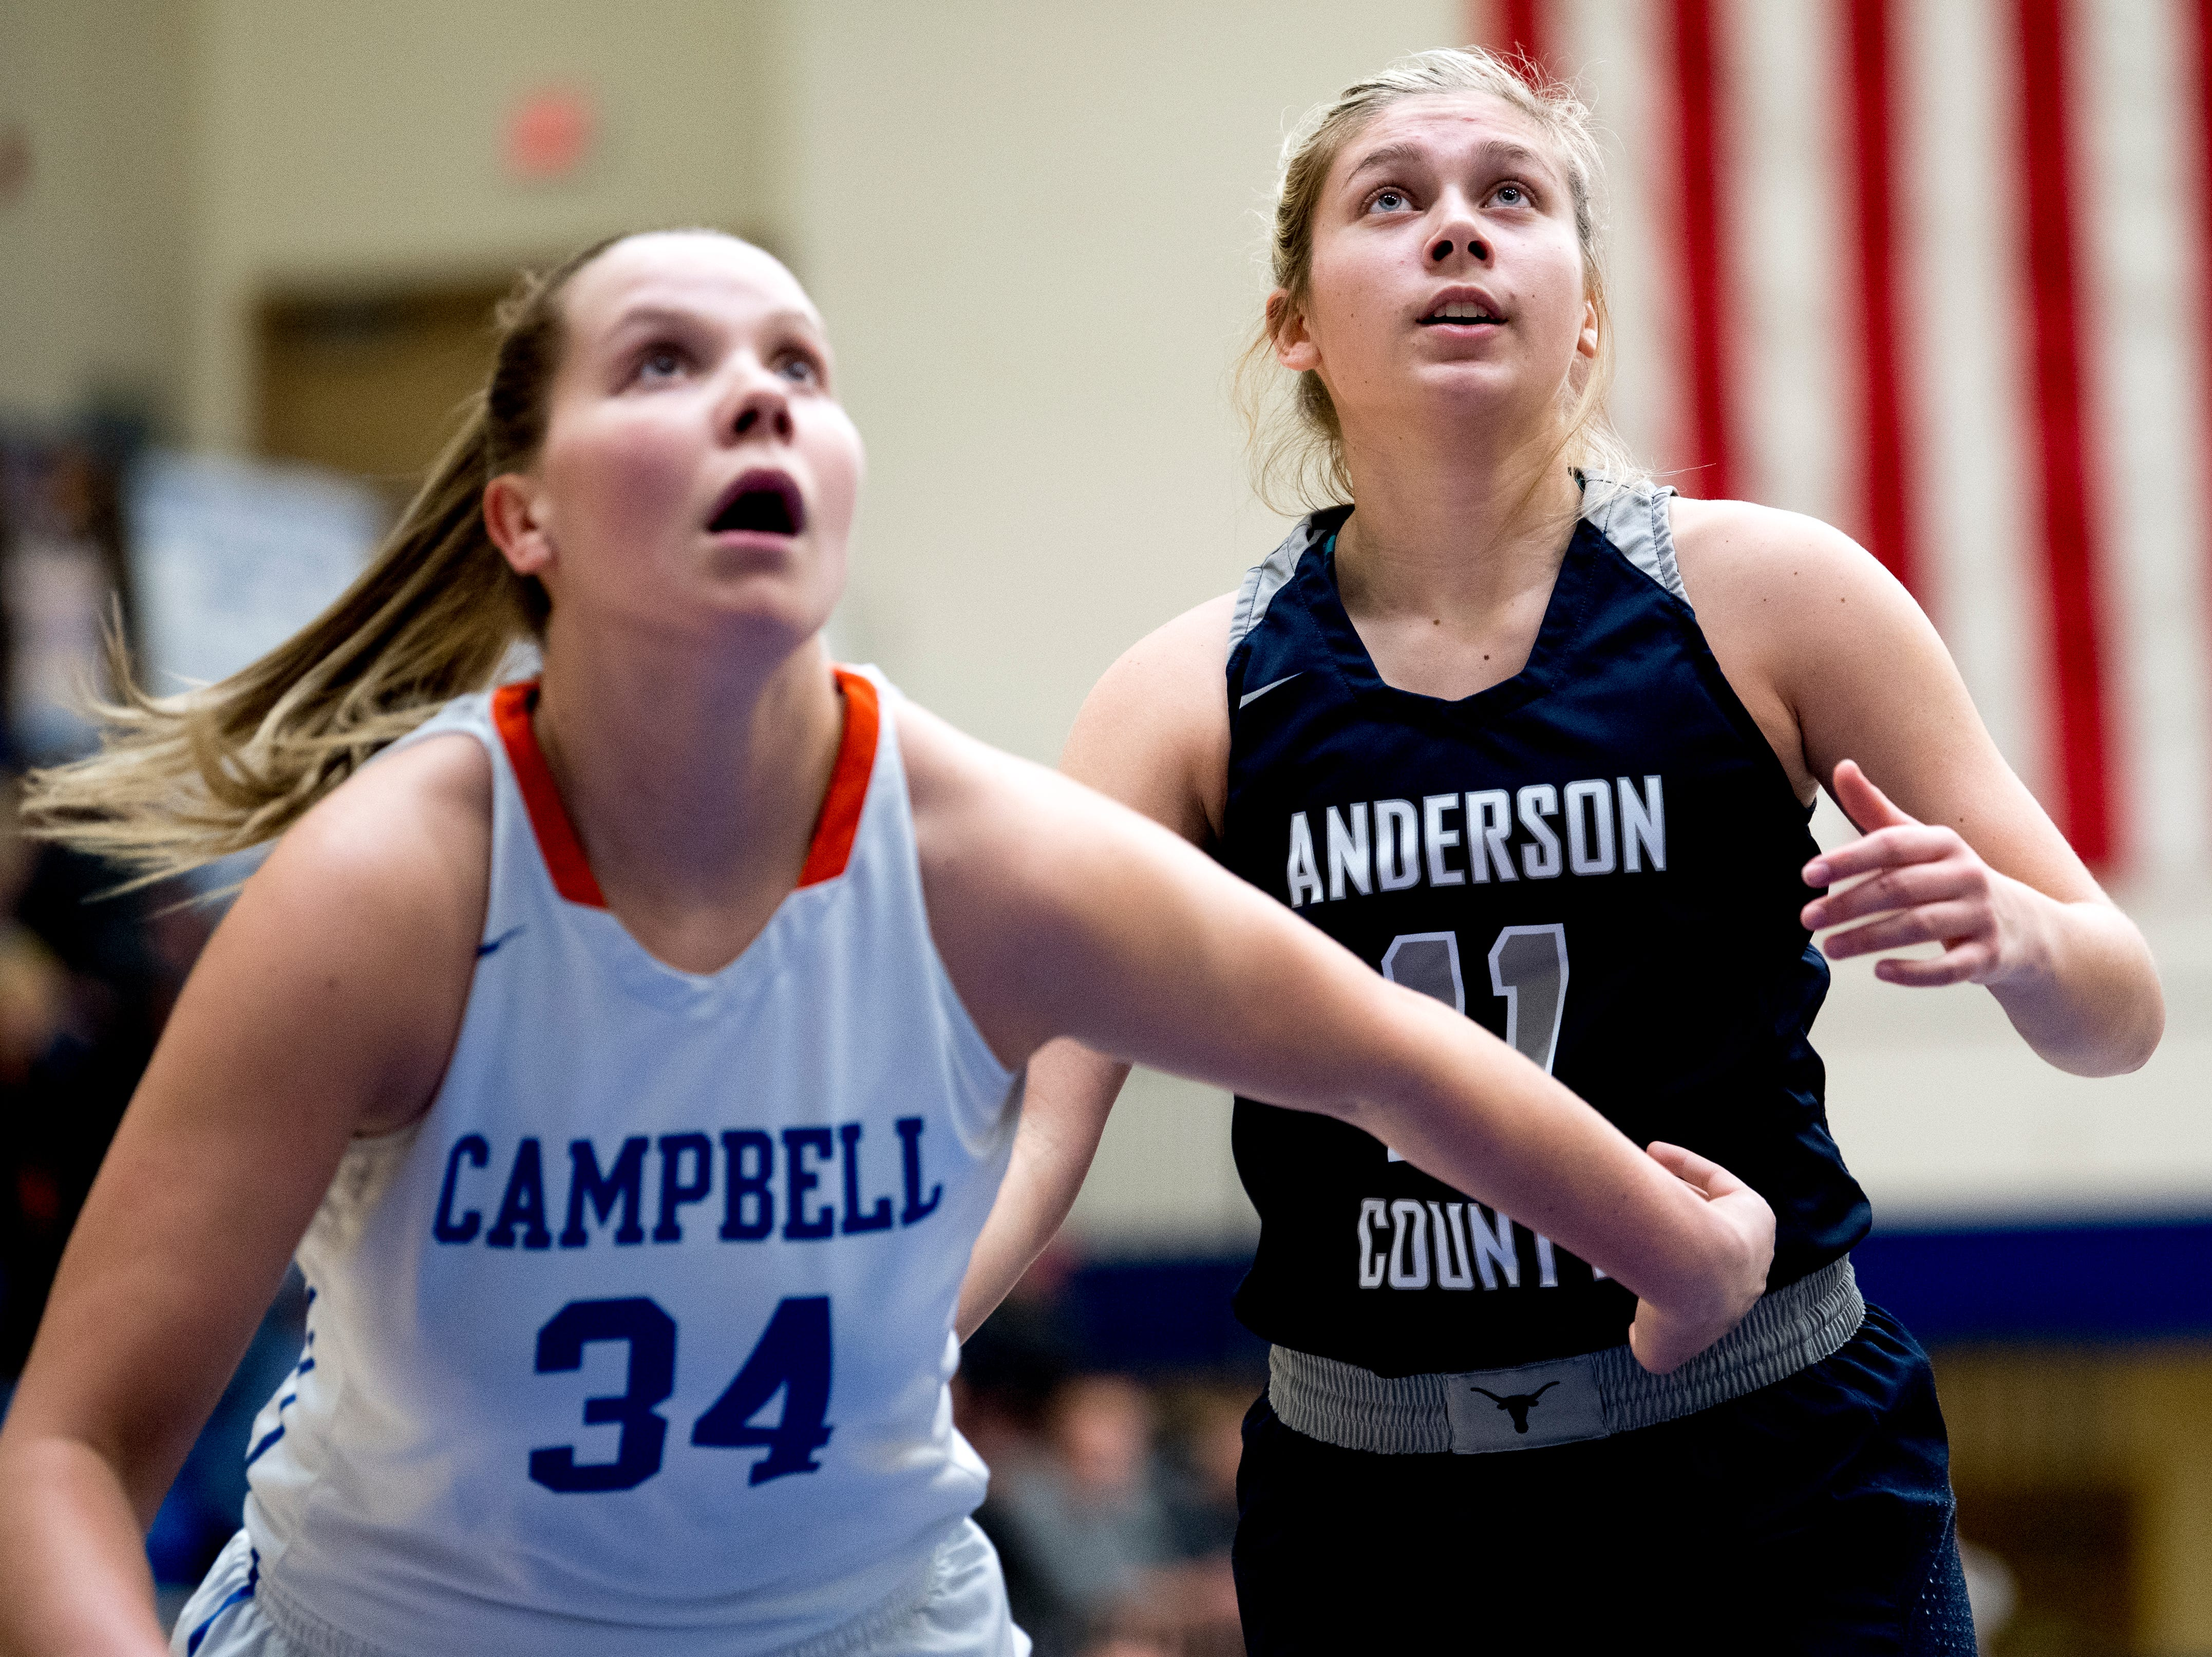 Campbell County's Haley Comer (34) and Anderson County's Juliann Smith (11) eye the rebound during a game between semifinal game between Anderson County and Campbell County at Karns High School in Knoxville, Tennessee on Saturday, February 16, 2019.